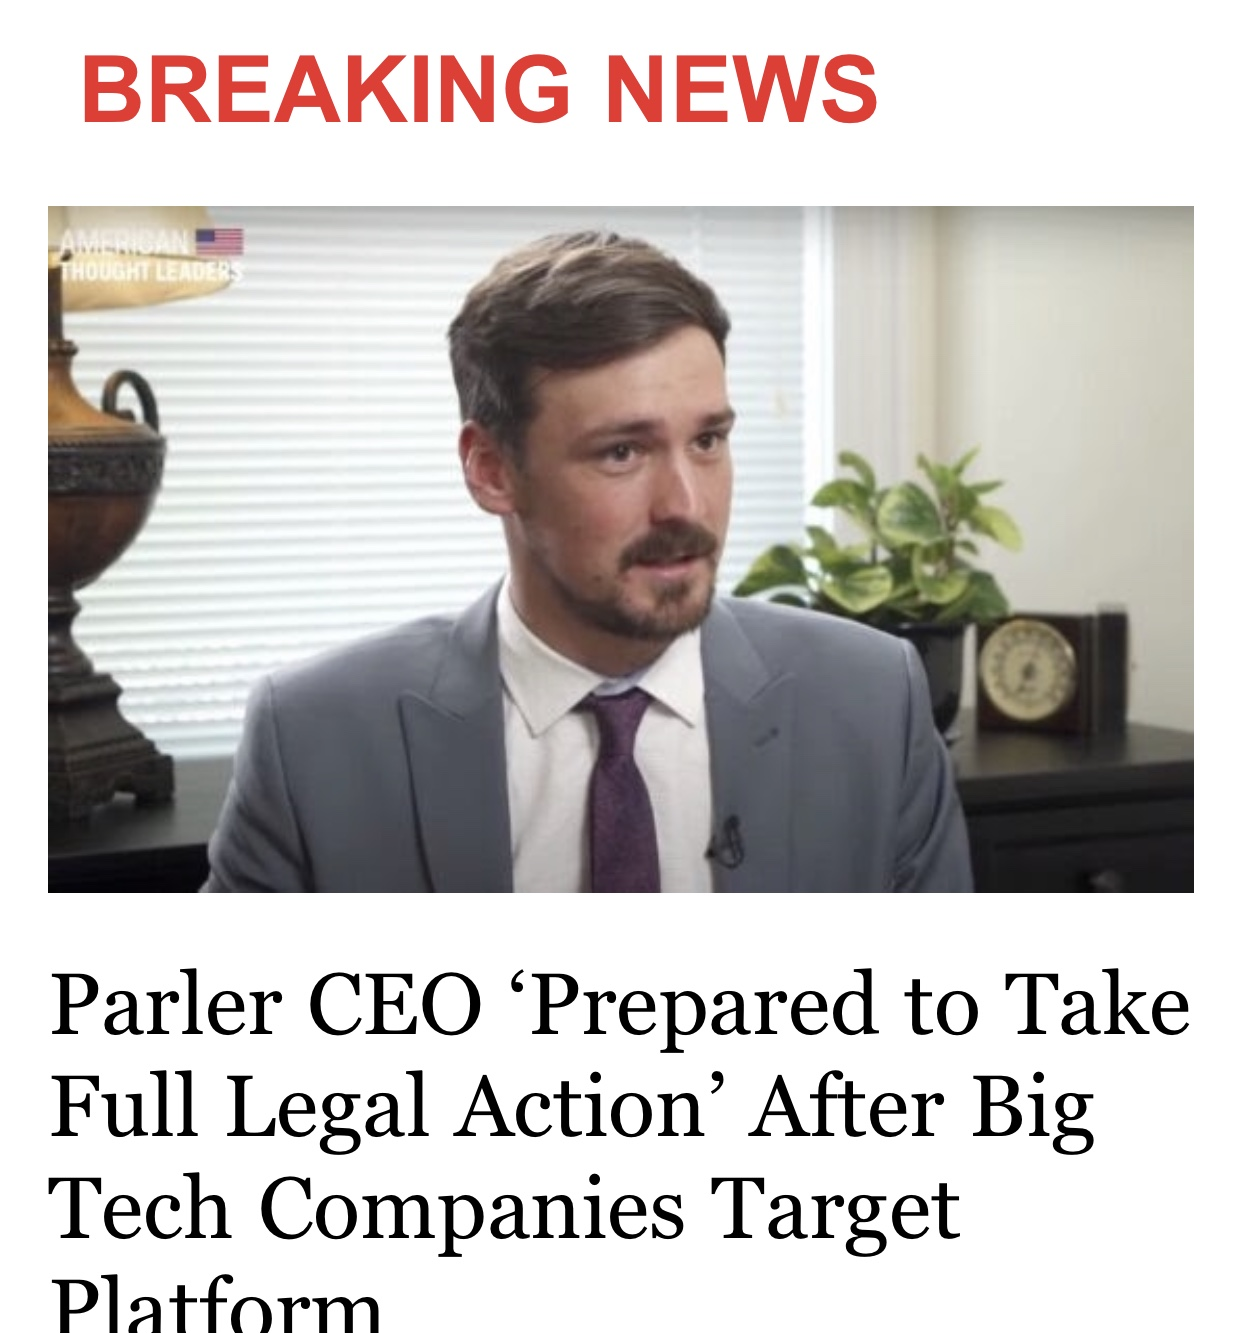 Parler CEO 'Prepared to Take Full Legal Action' After Big Tech Companies Target Platform